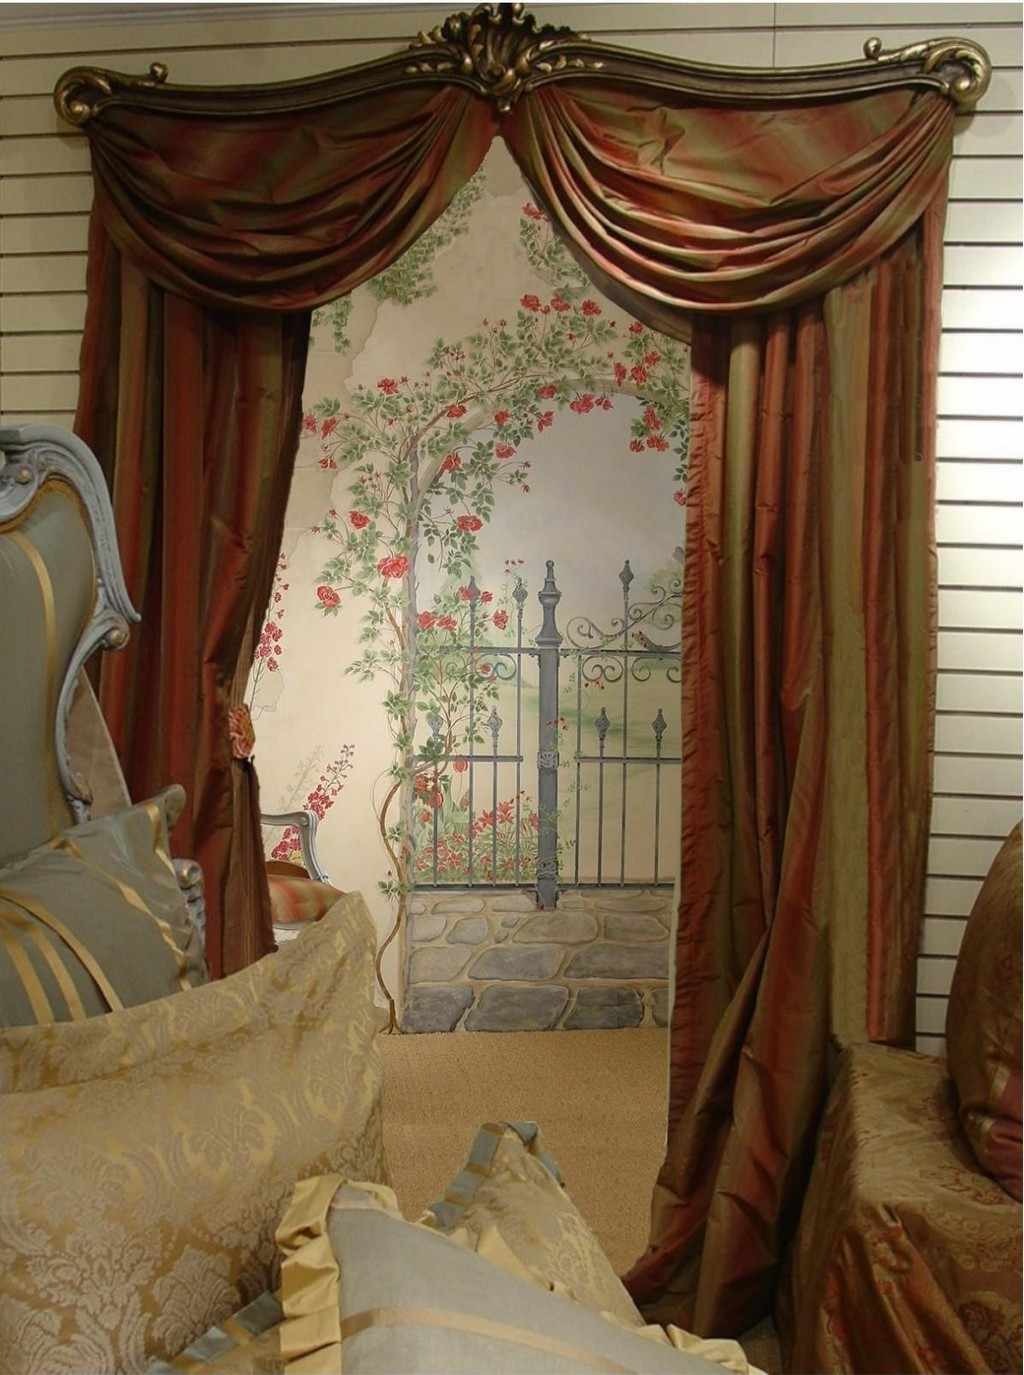 pleated drapes, vintage drapes, rackets and drapes, curtains and drapes